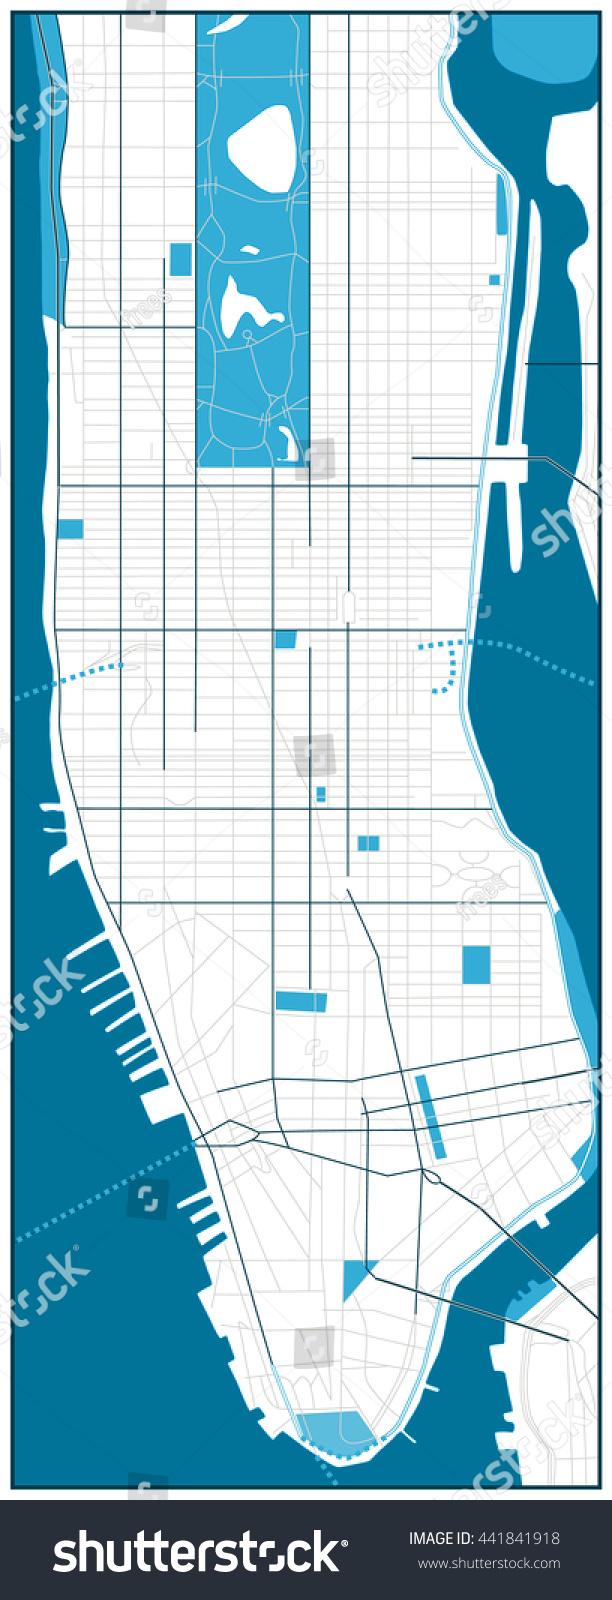 Manhattan Blank Road Map Vector Illustration Stock Vector (Royalty